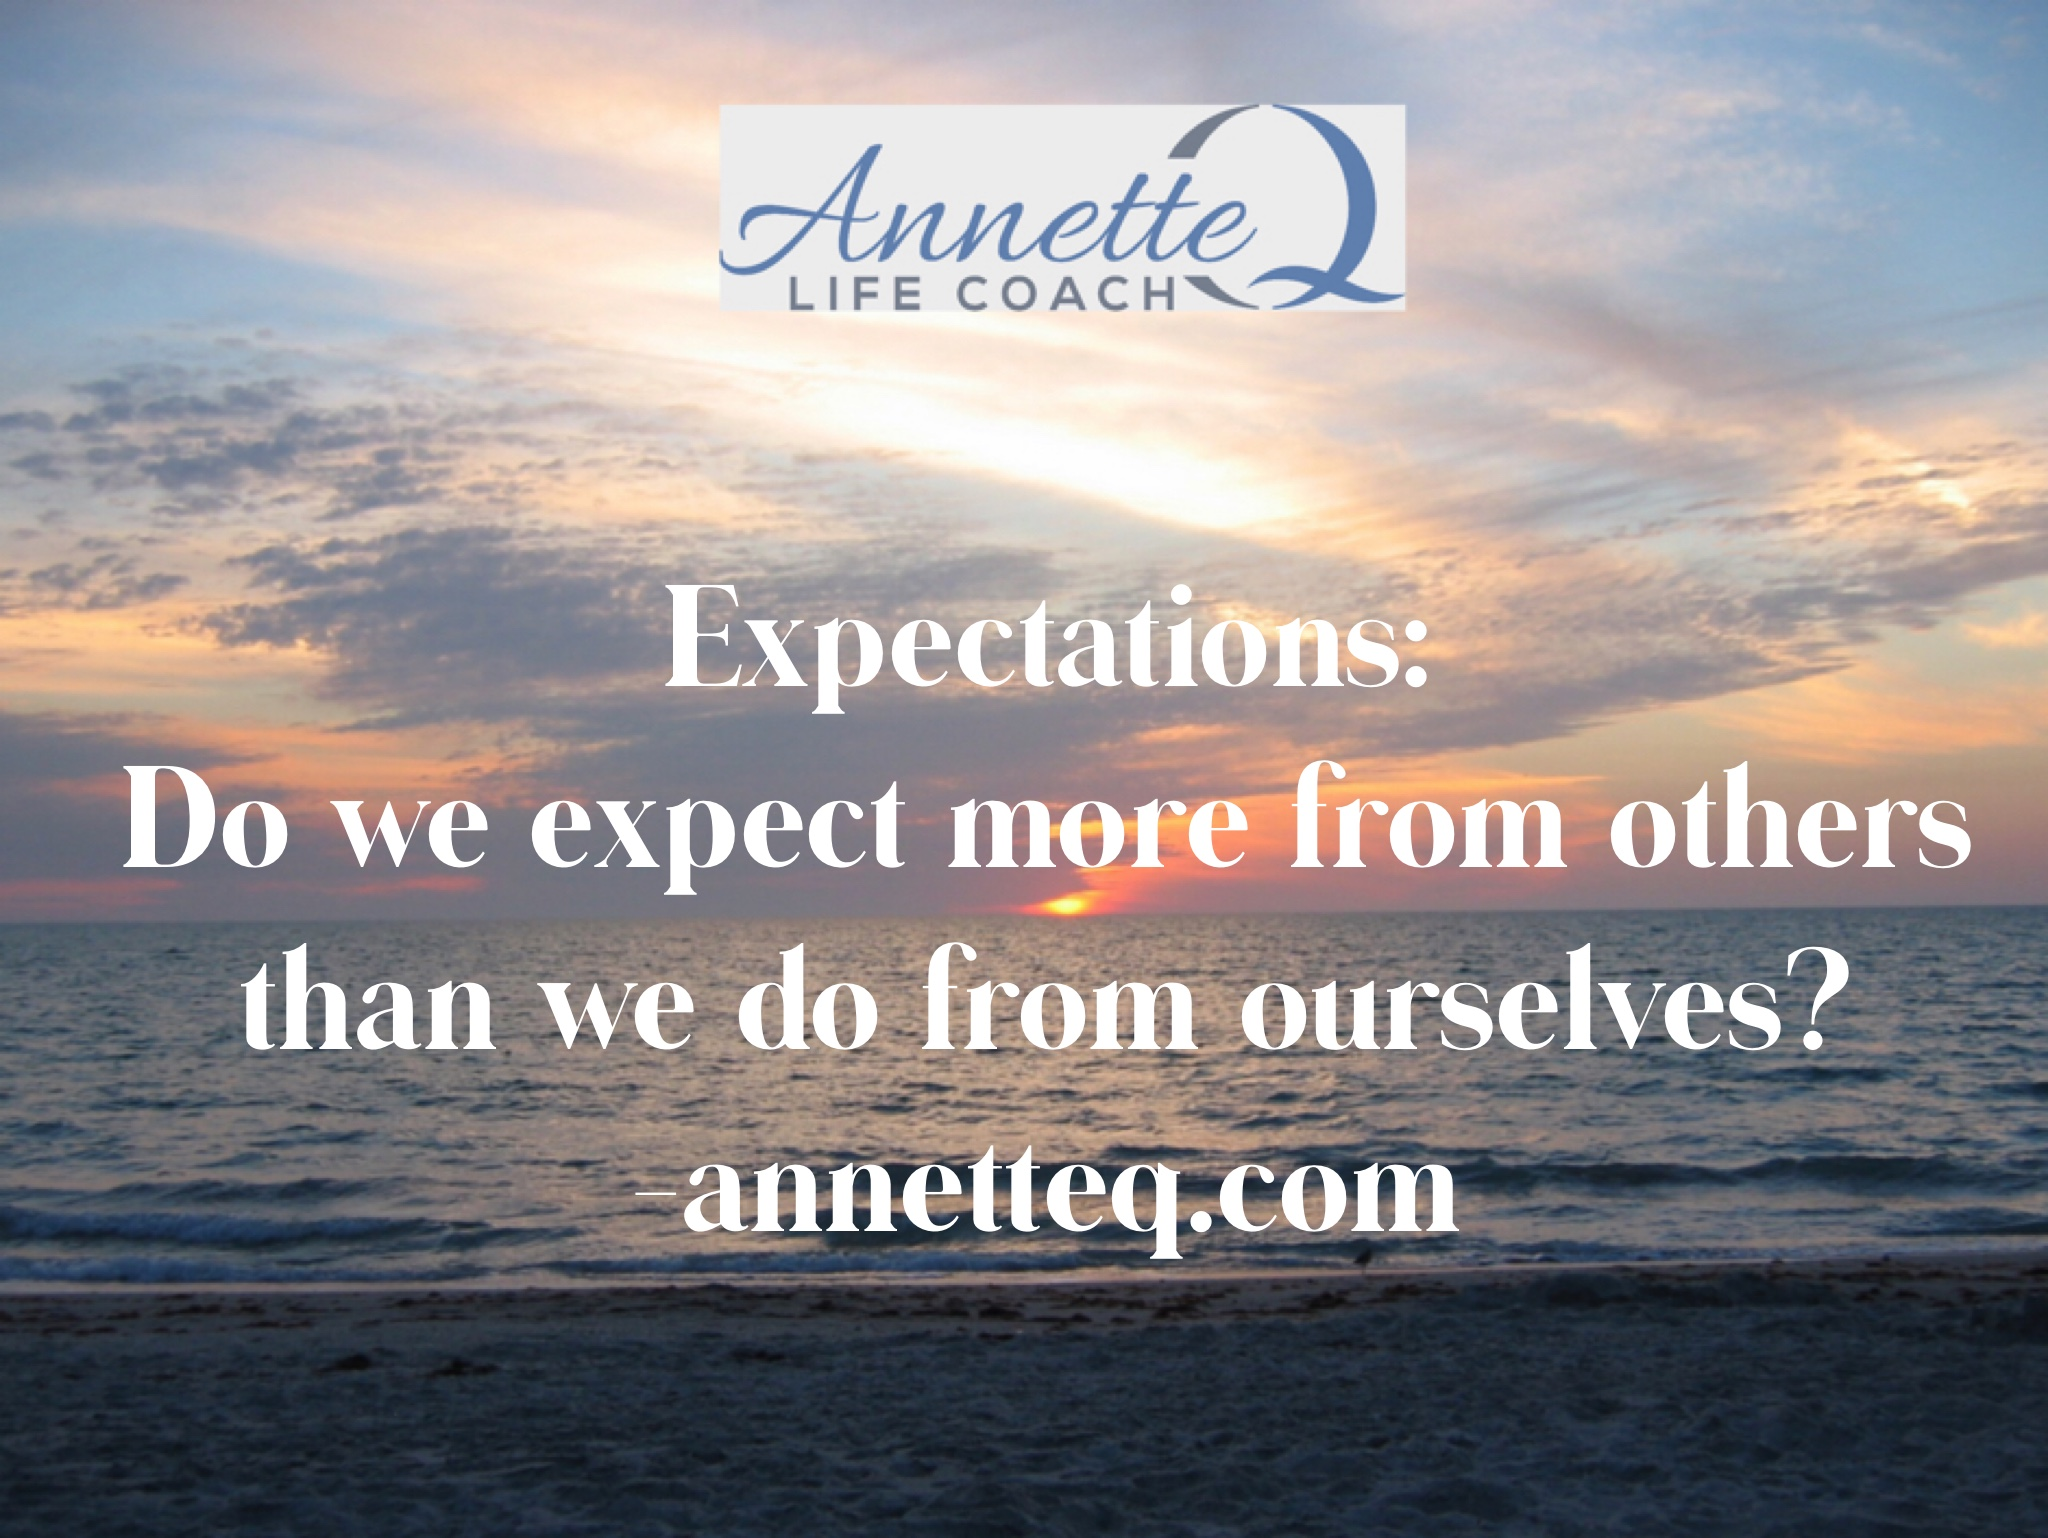 Expectations: Do we expect more from others than we do from ourselves?